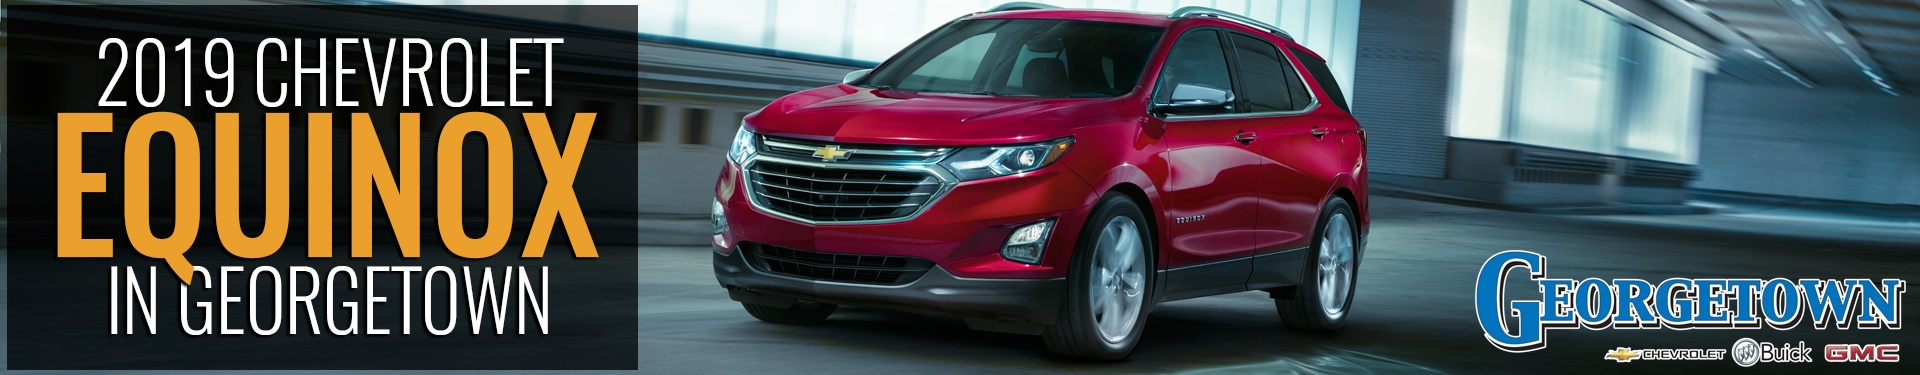 Discover the new 2019 Chevrolet Equinox in Georgetown and the Greater Toronto Area from Georgetown Chevrolet, new SUV in the GTA